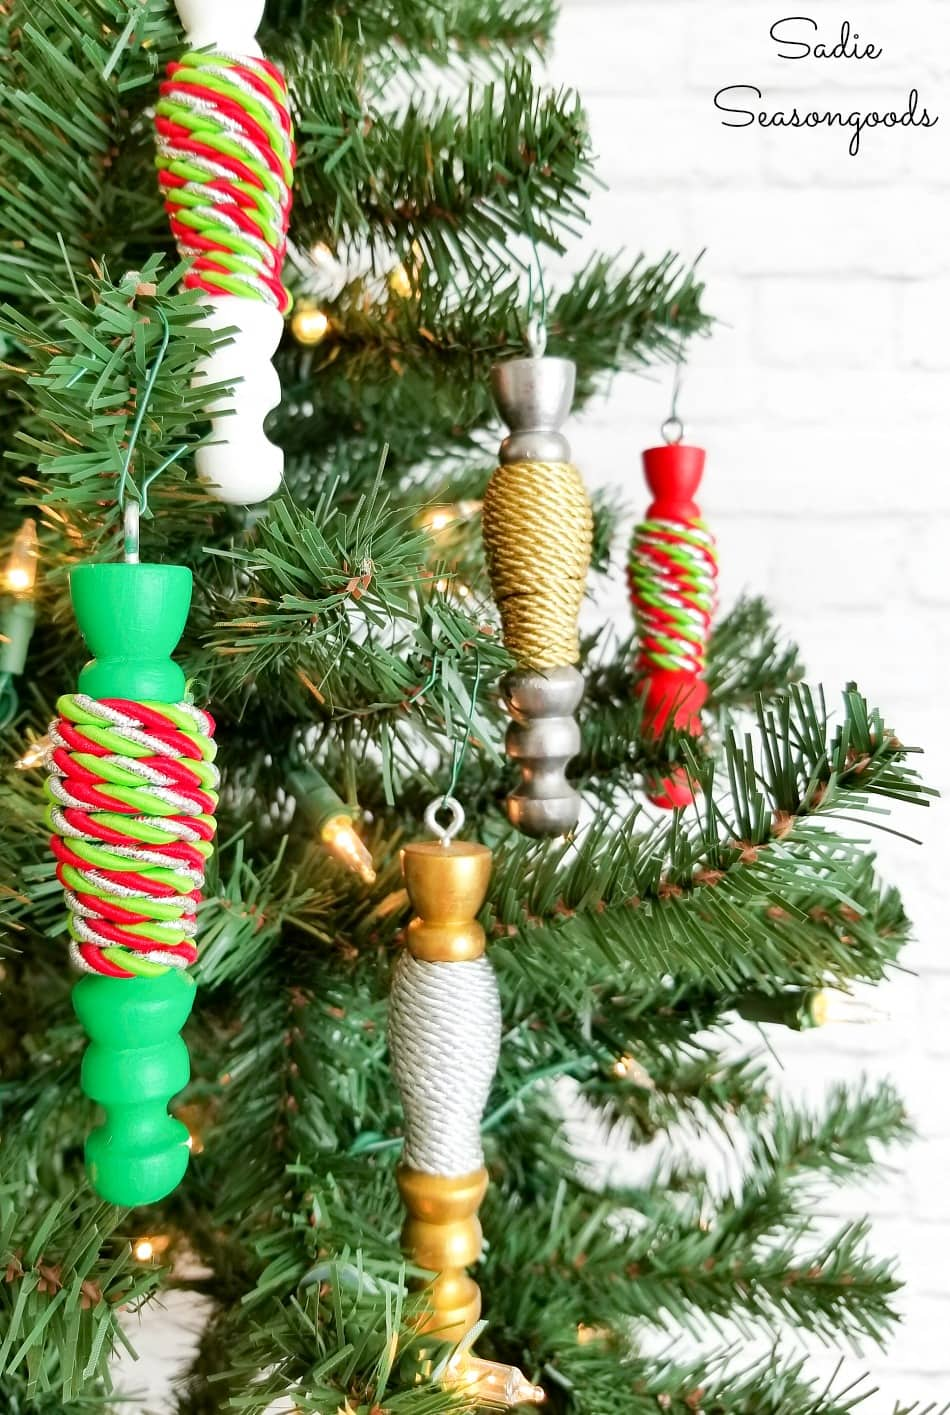 Wooden spindle ornaments on a Christmas tree